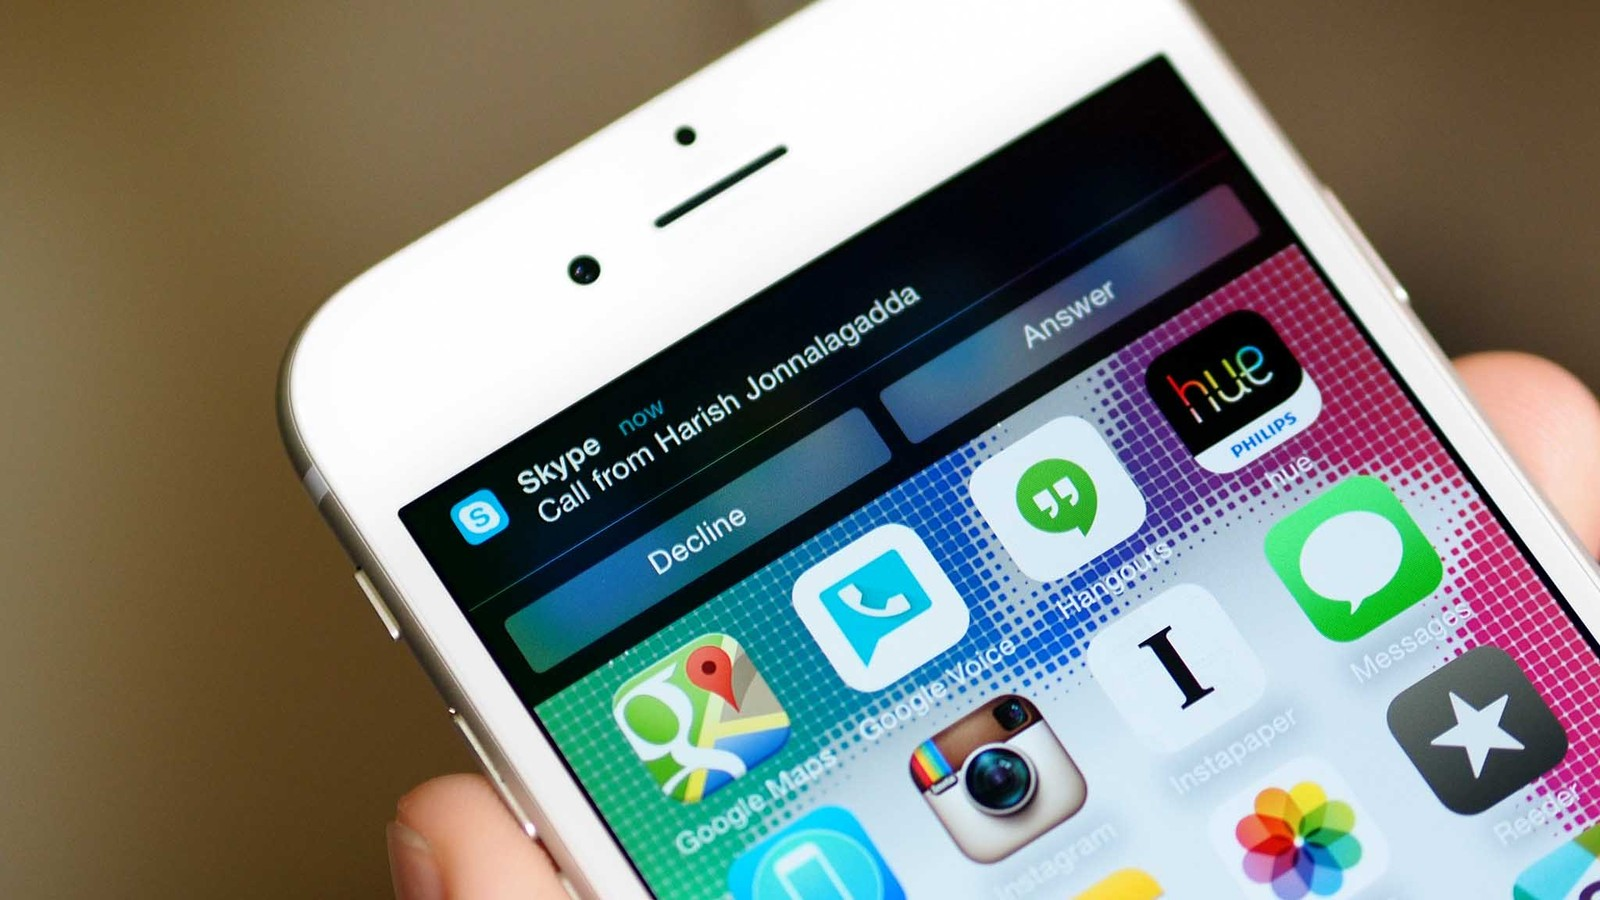 Skype for iPhone lets you choose how to answer right from the notification